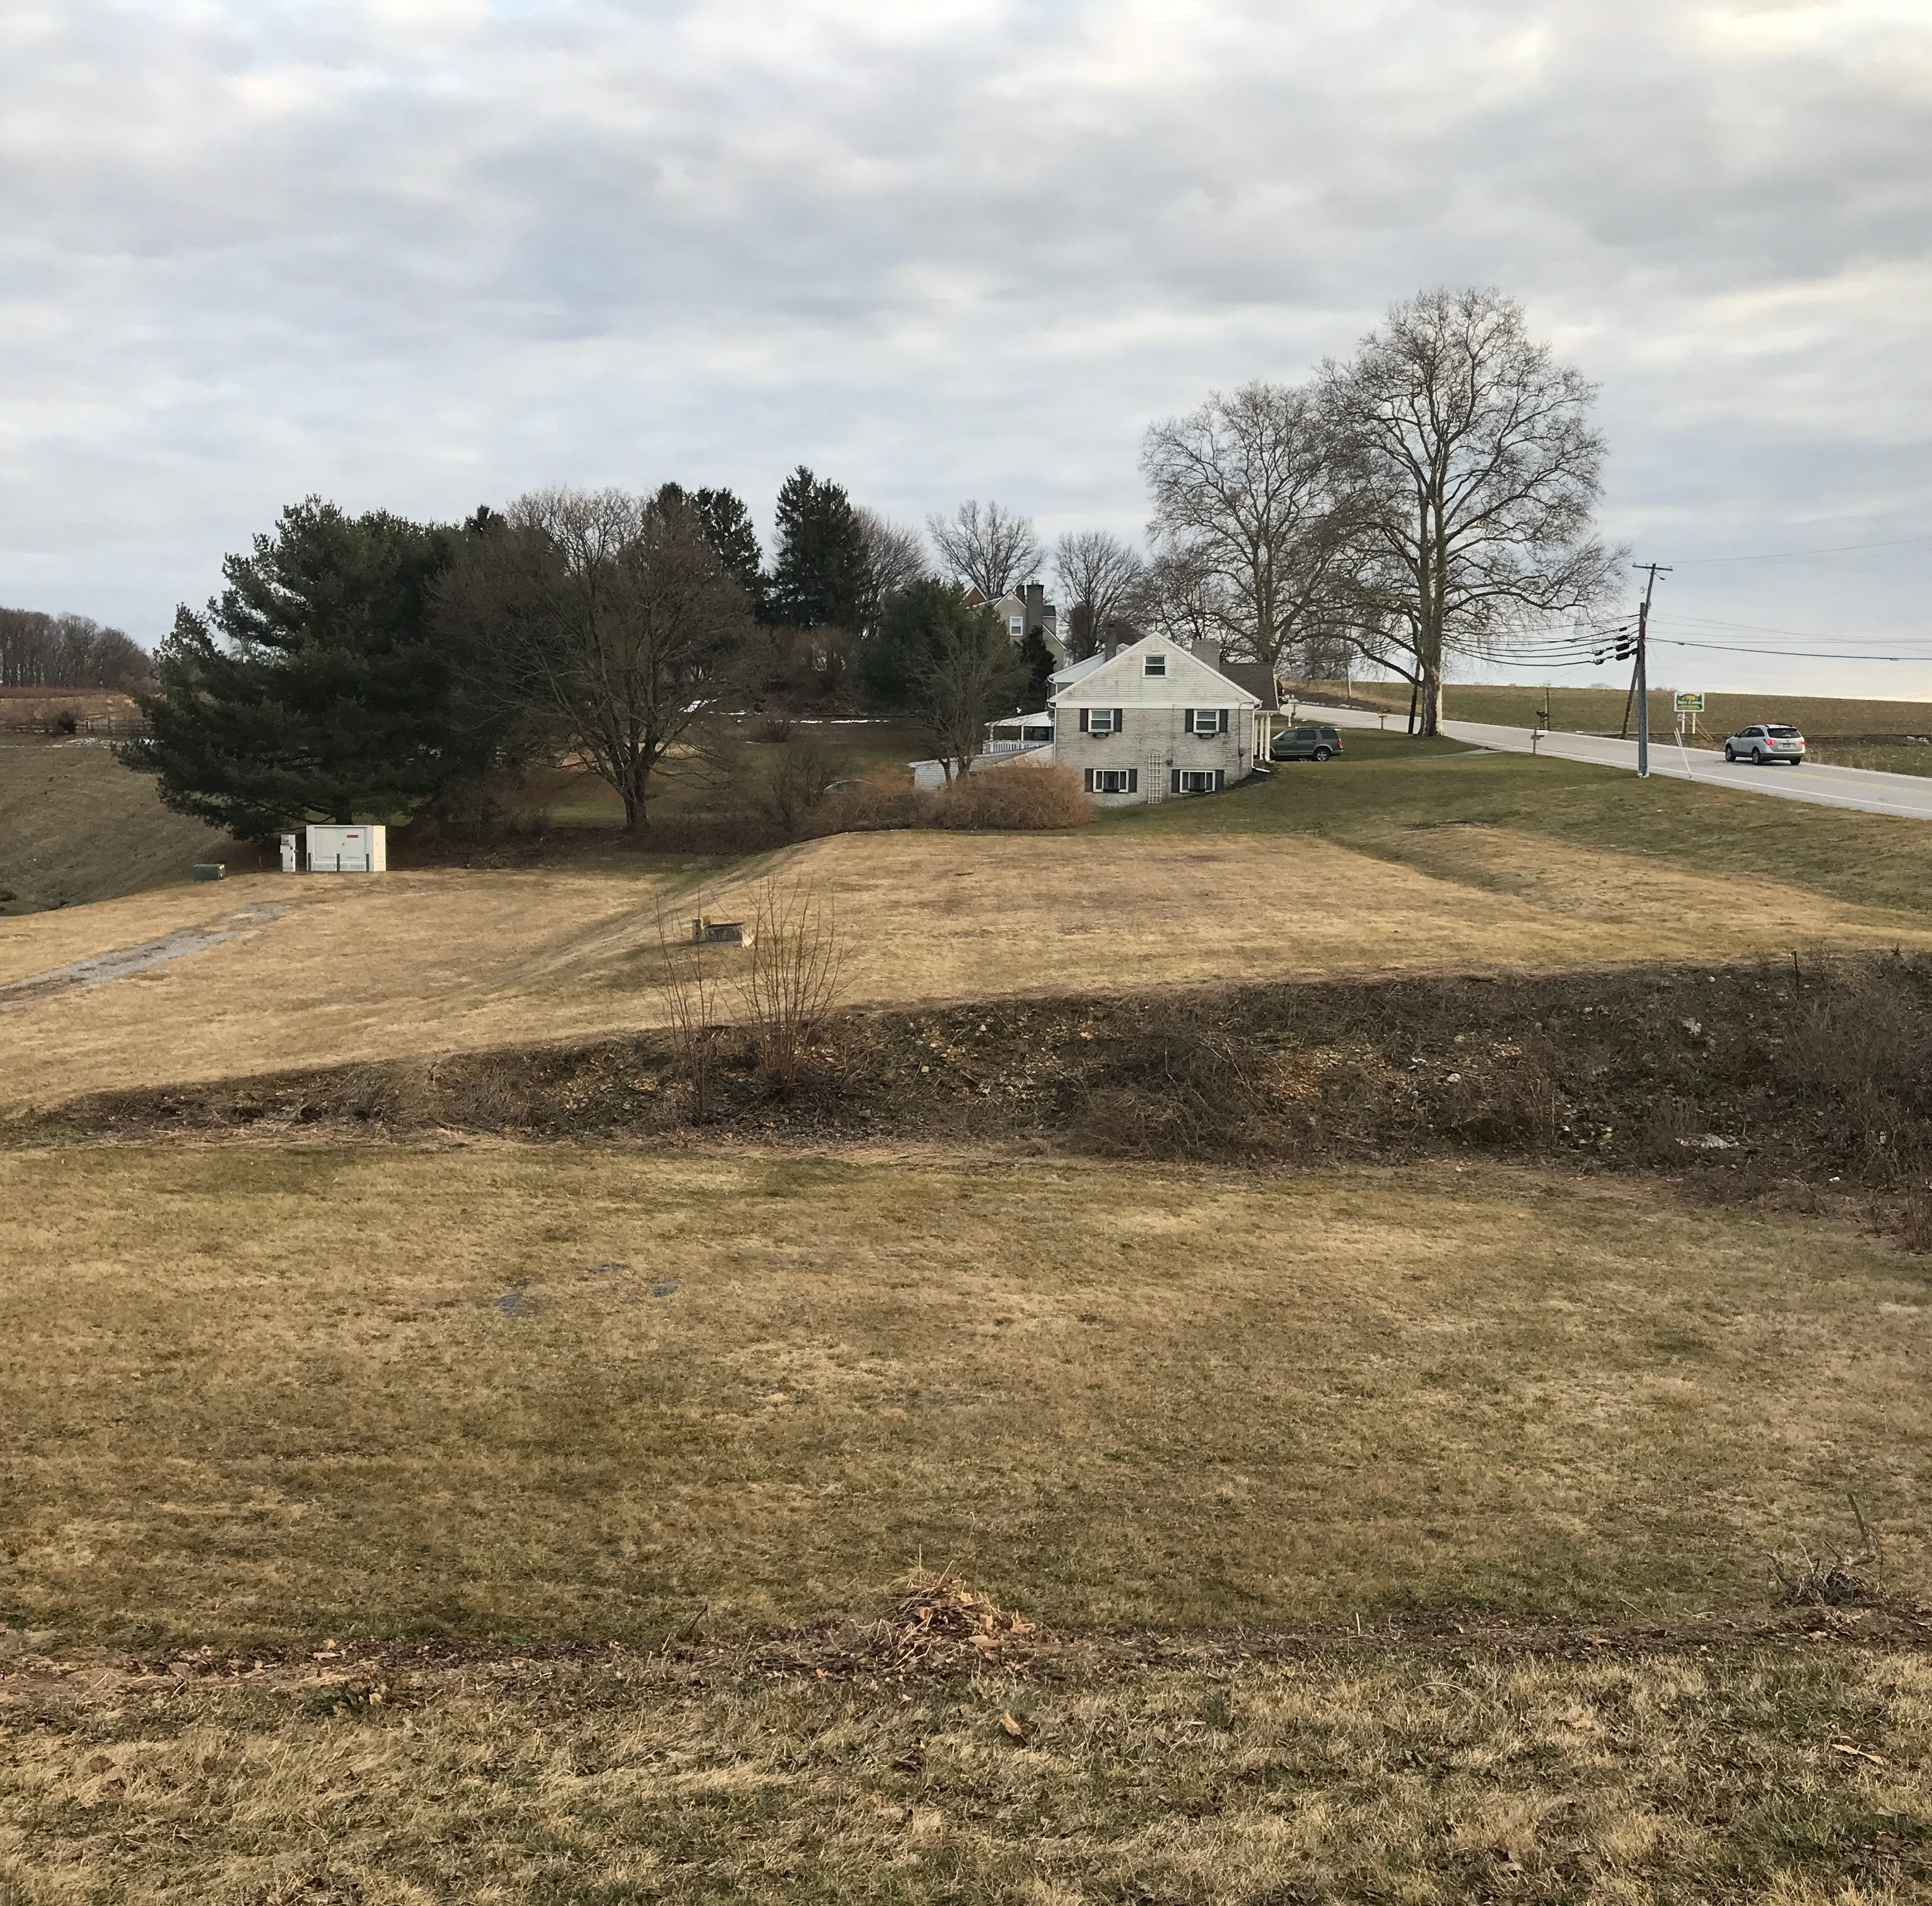 'Do we need that?' Dollar store proposed in southern York County